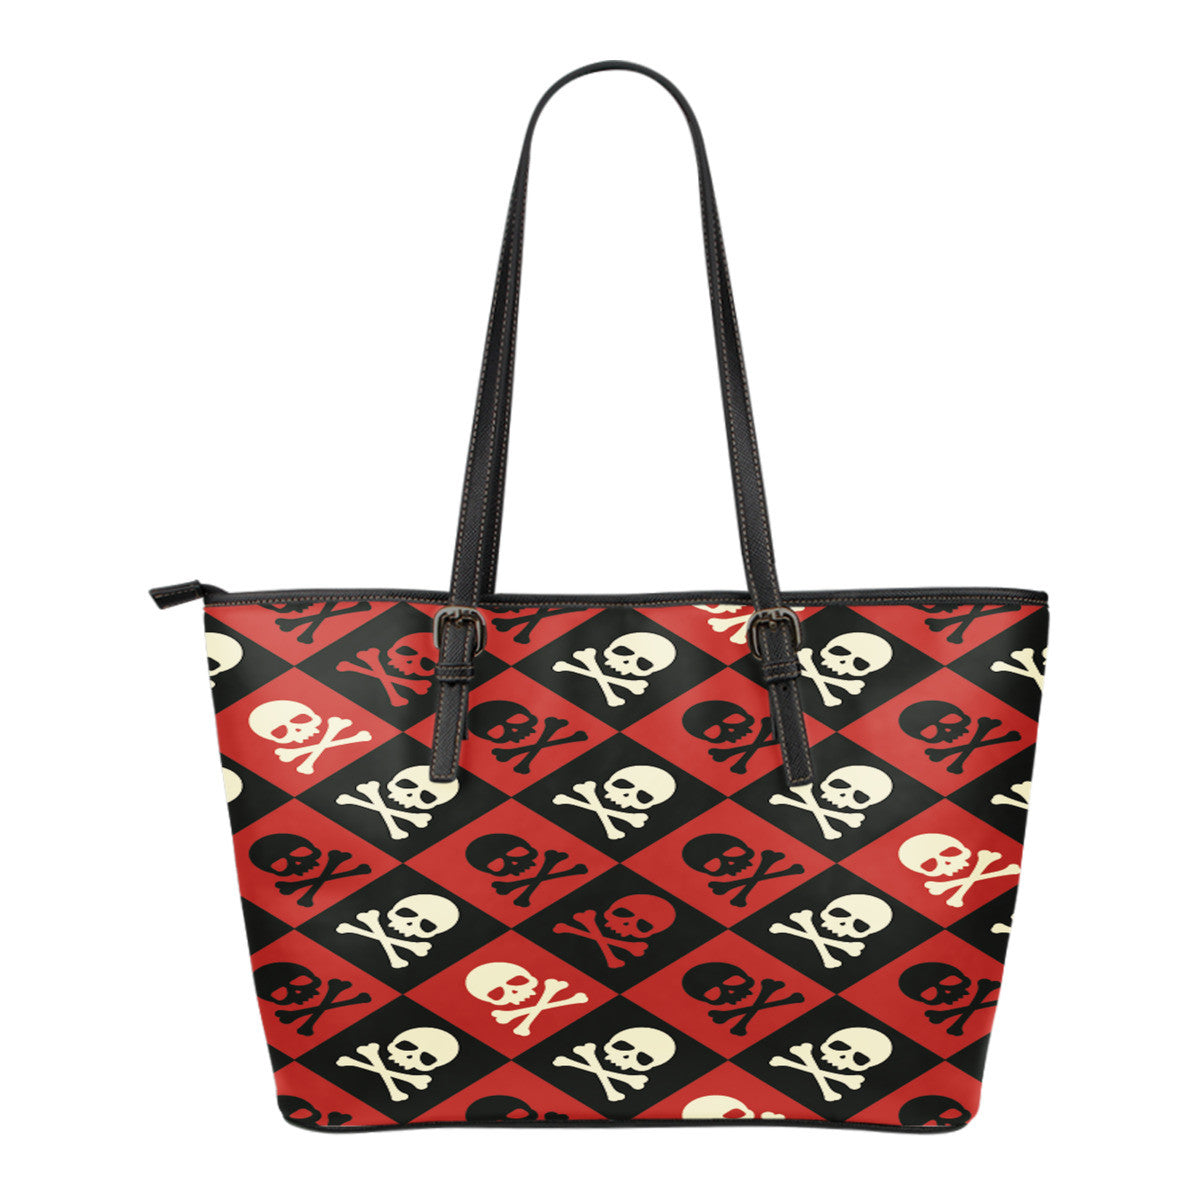 Crossbones Checkerboard Leather Tote Bag